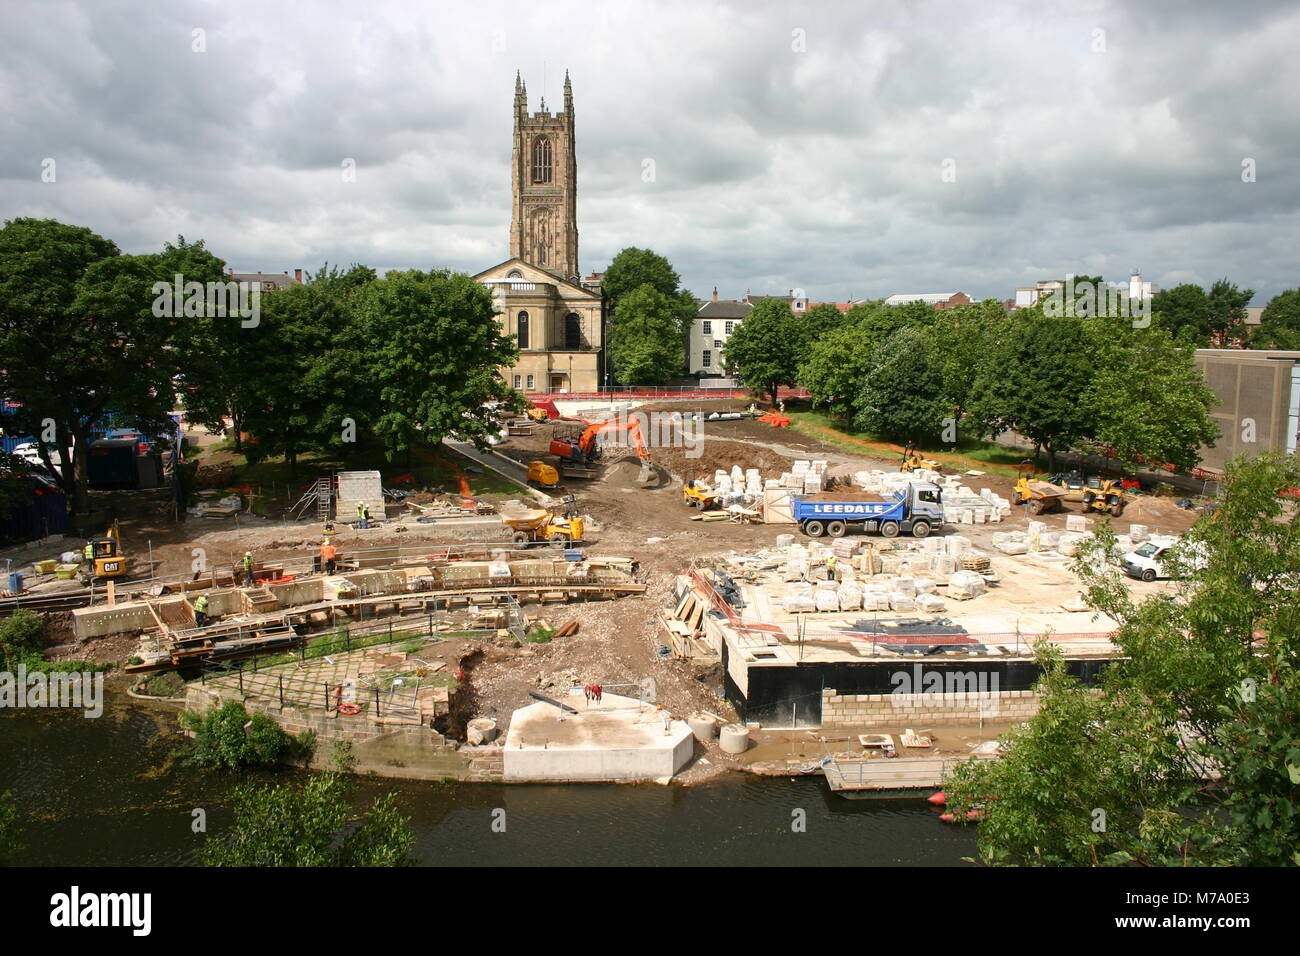 The construction of a new public space, Cathedral Green, Derby, UK - Stock Image